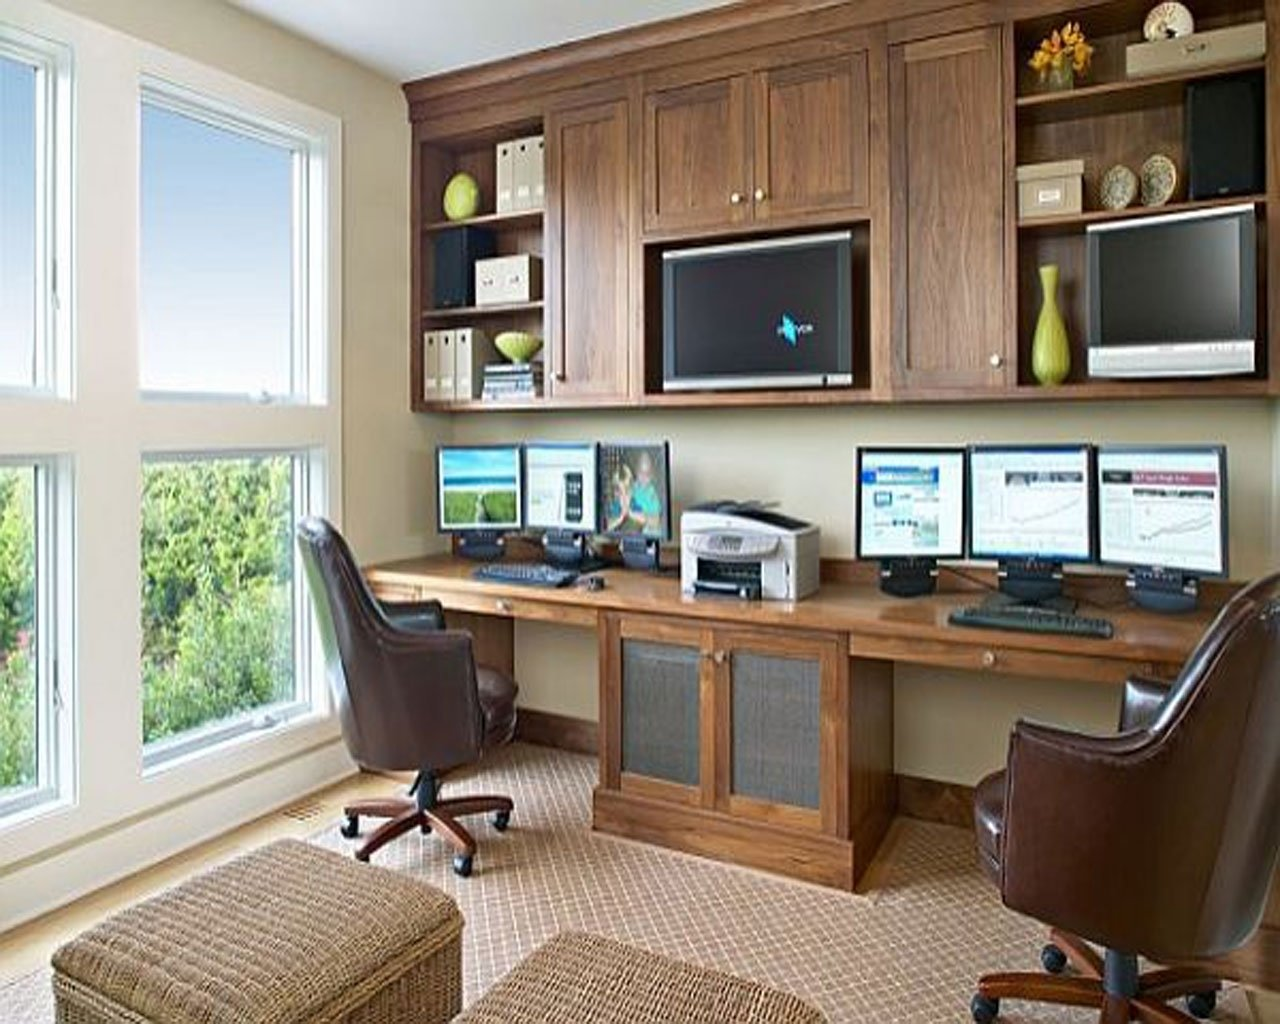 10 Amazing Home Office Ideas For Small Spaces home office ideas for small space classy design httpklosteria comwp 2021